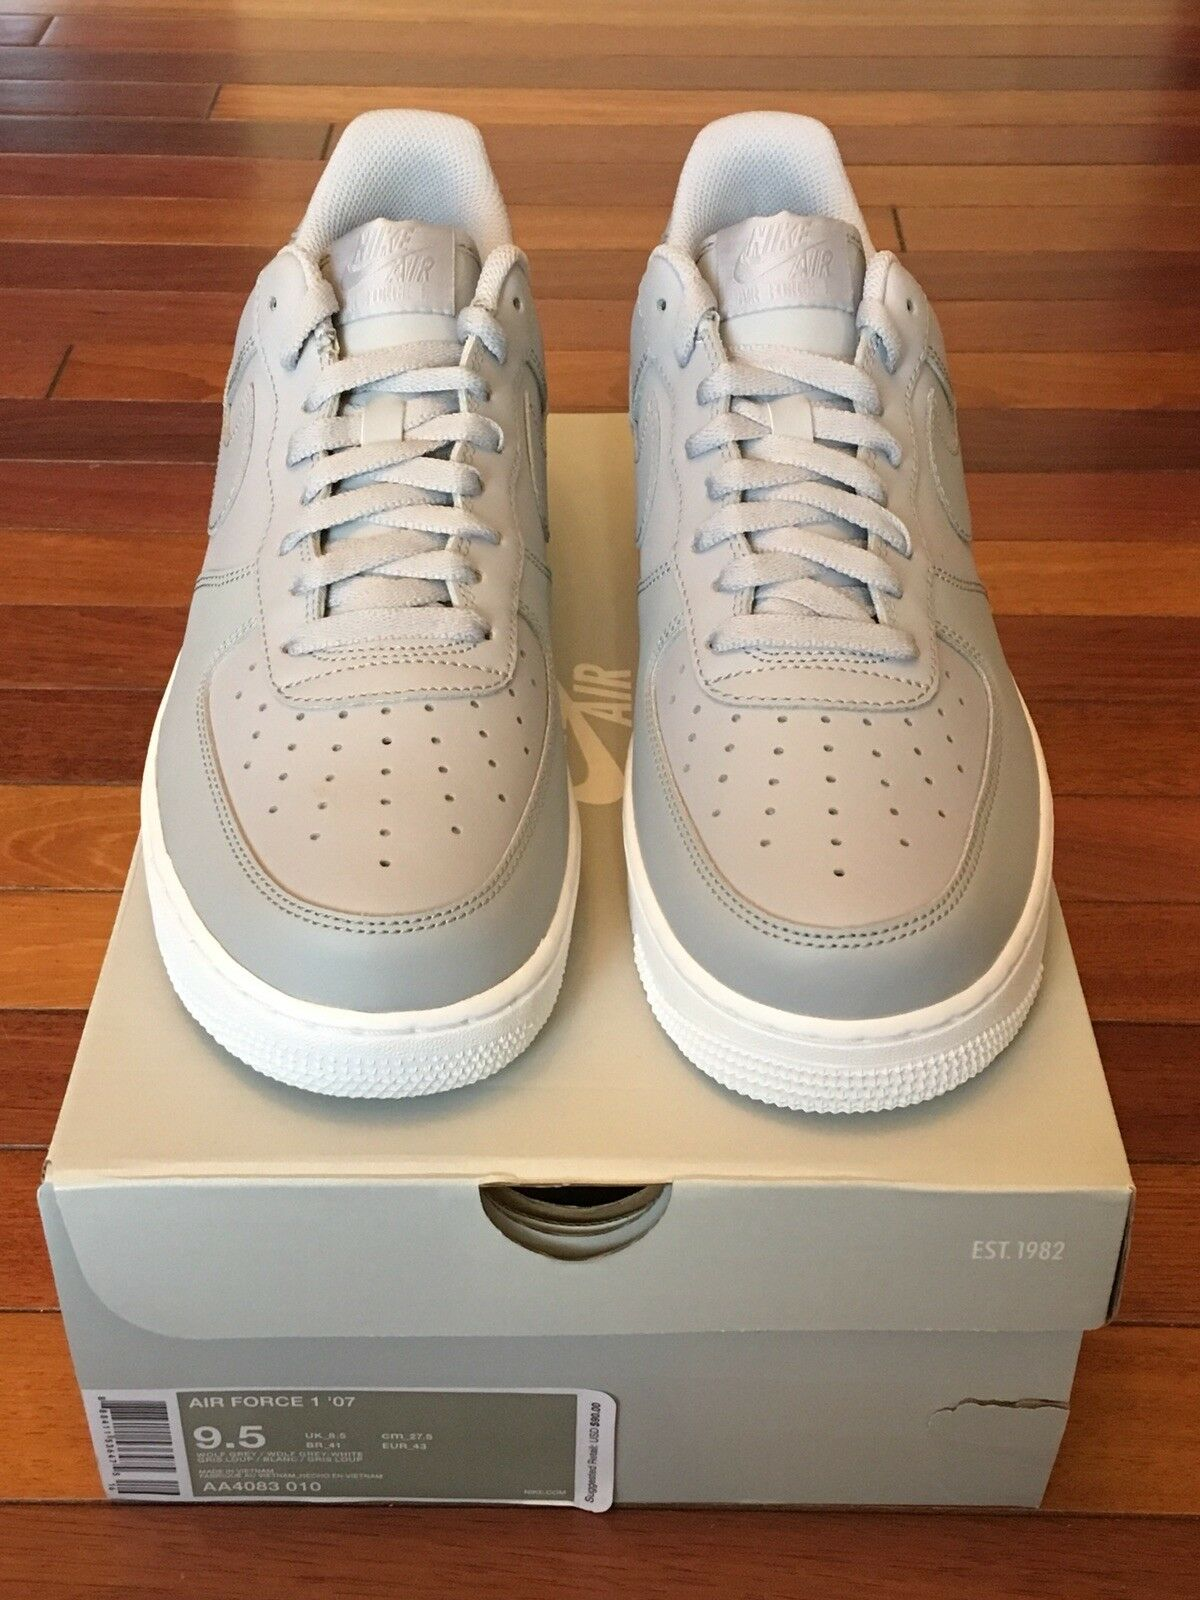 Nike Air Grey-White Force 1 '07 AA4083-010 Wolf Grey/Wolf Grey-White Air Men's Size 9.5 707248